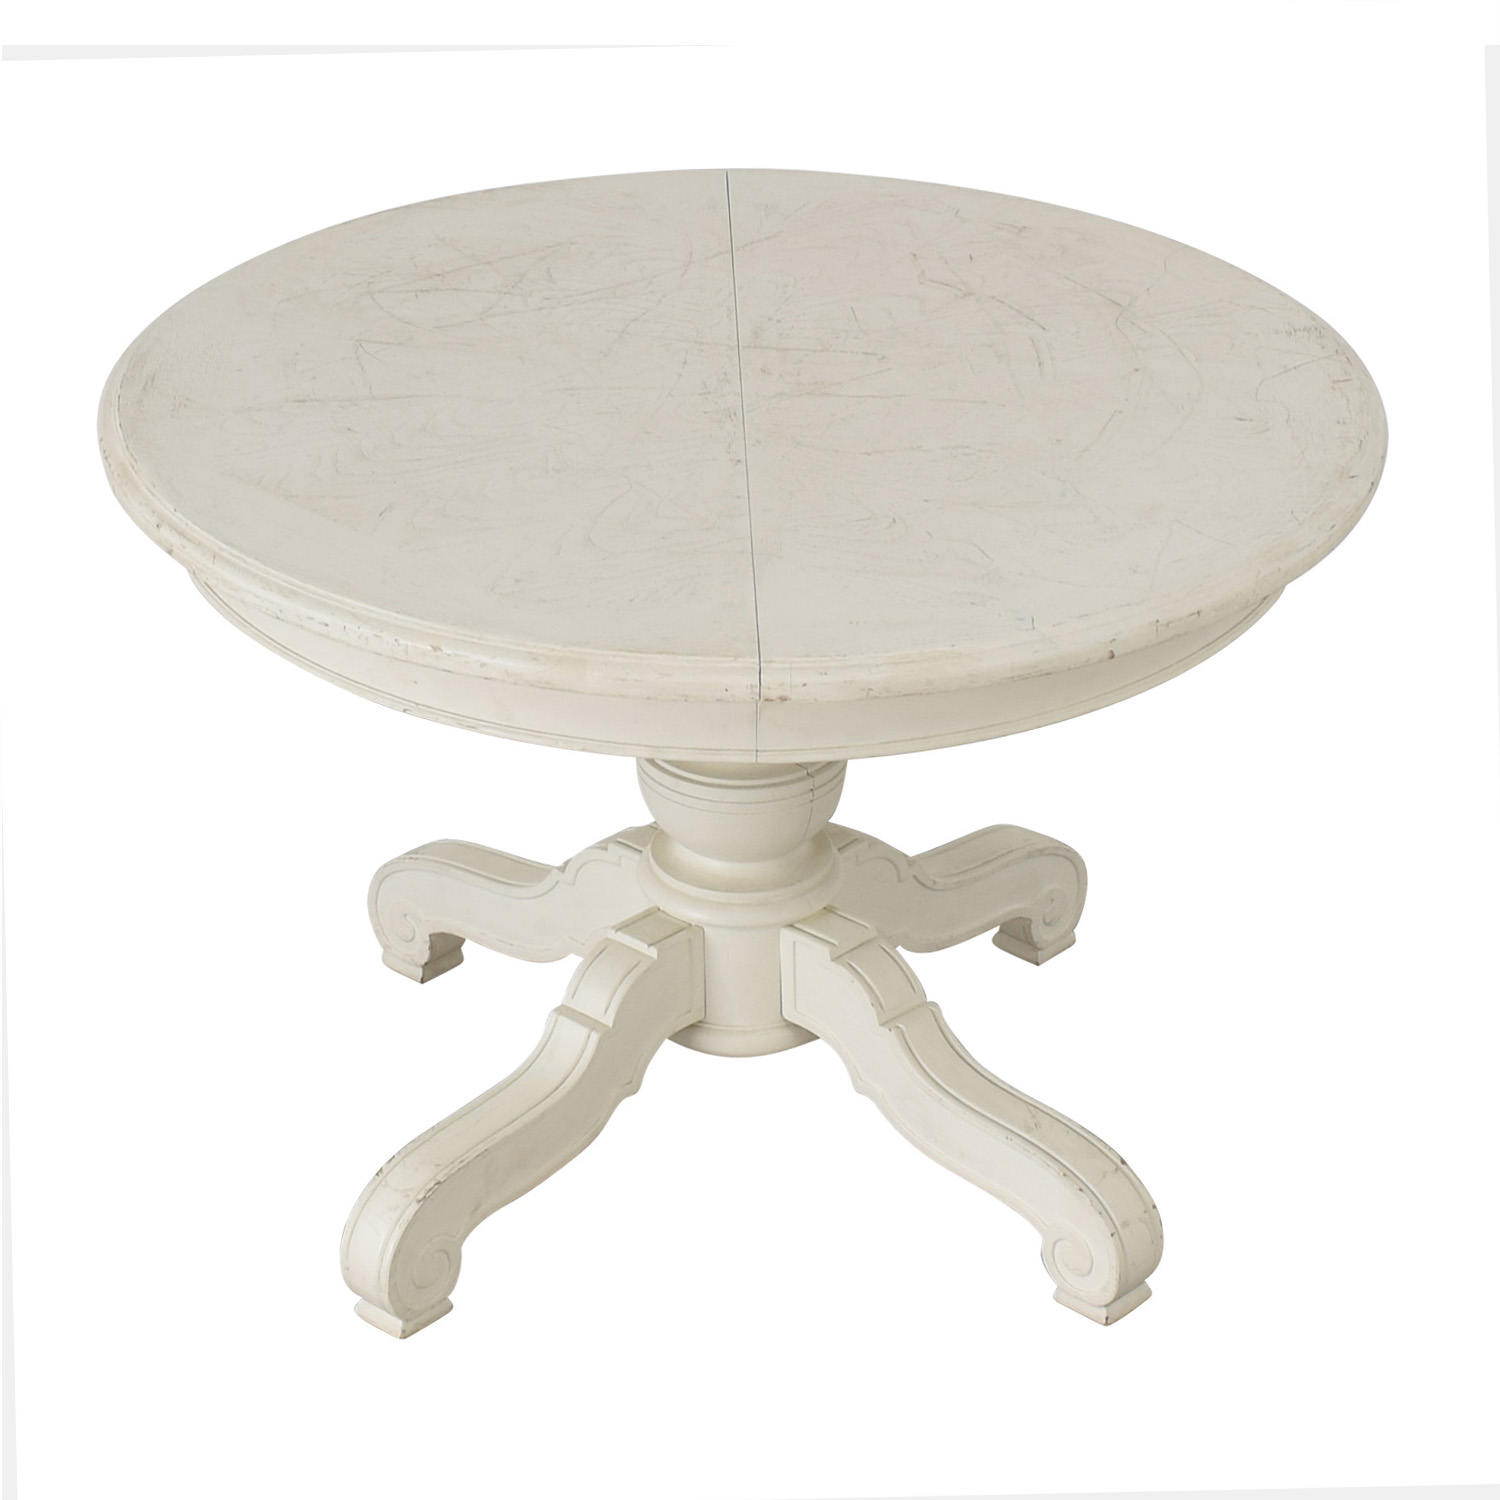 buy Victorian Style Round White Pedestal Dining Table